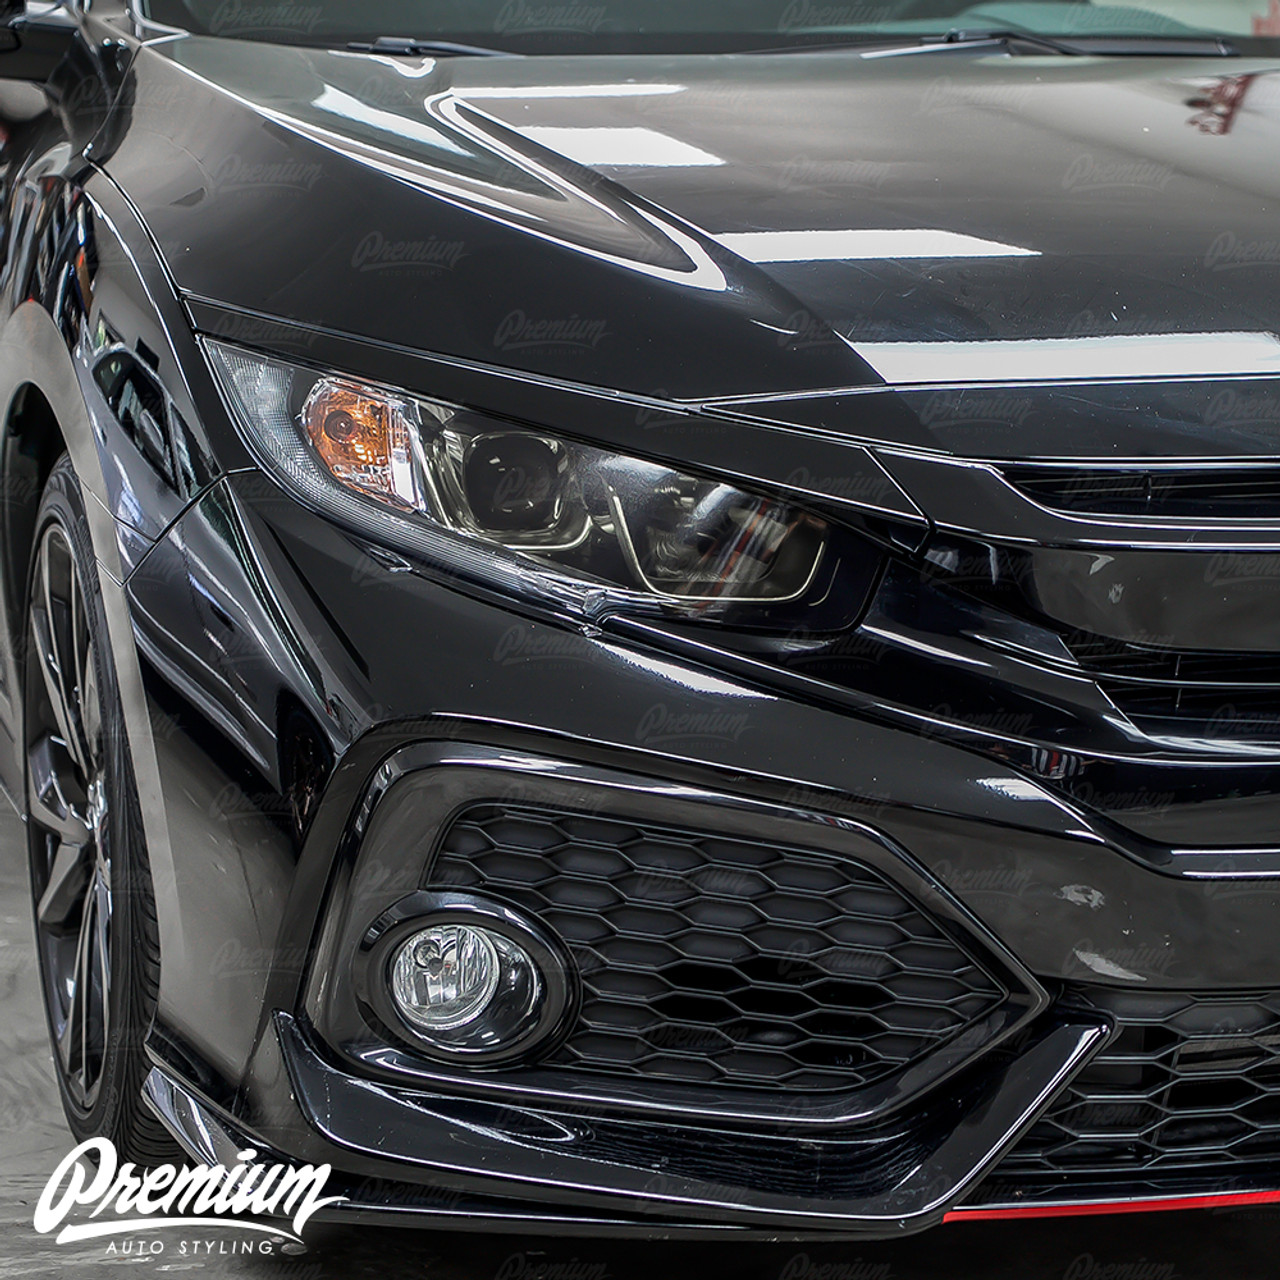 Headlight Face With Drl Cut Out Smoked Tint Overlay Honda Civic